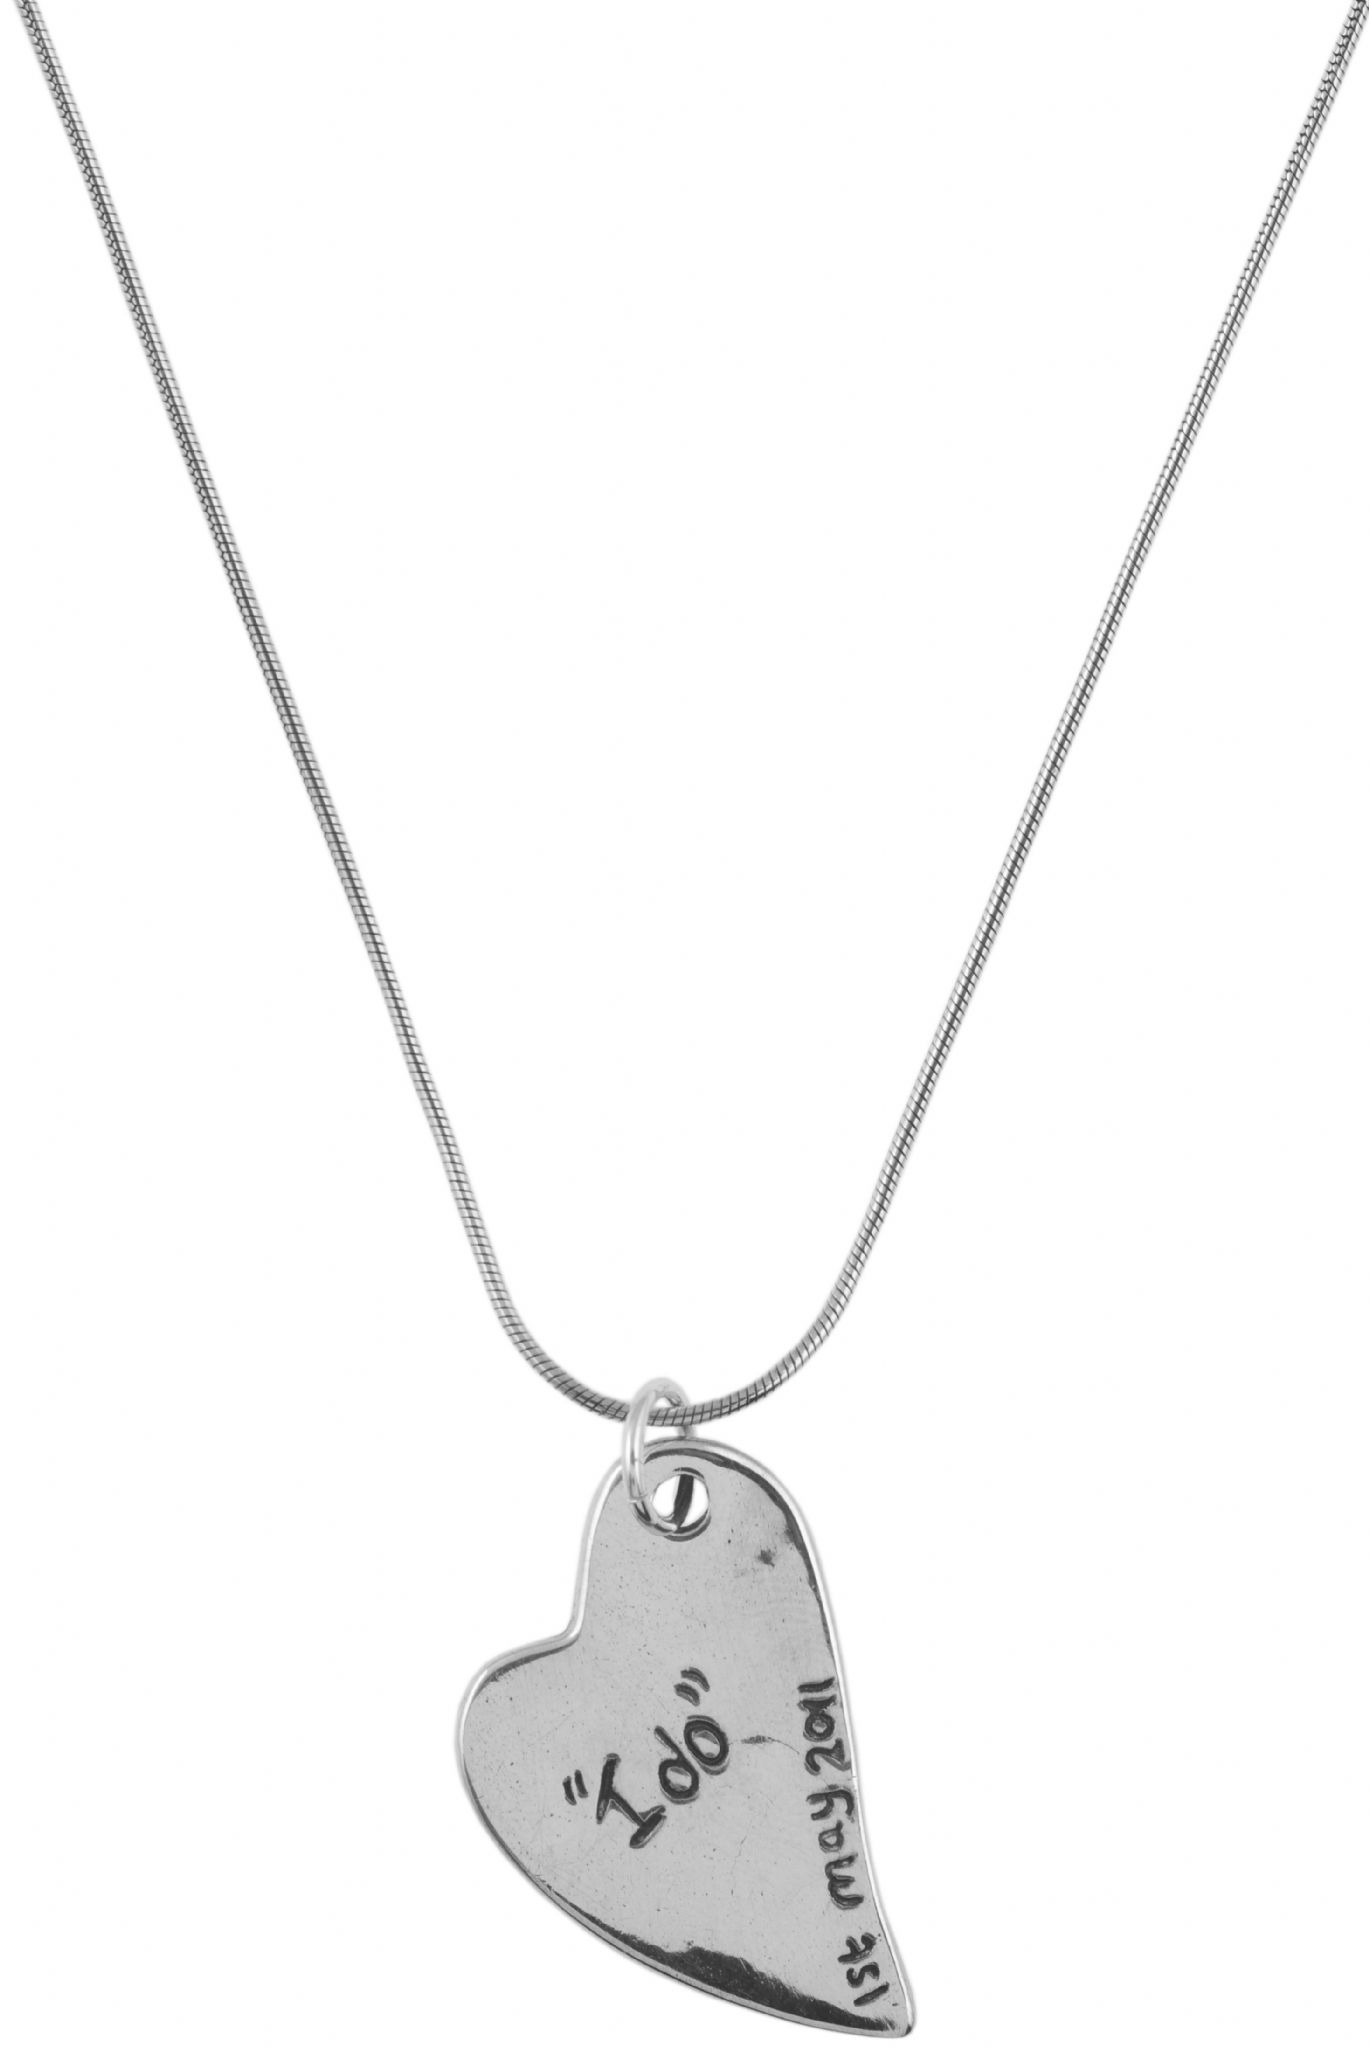 jewellery necklace heart butterfly hand fingerprint on